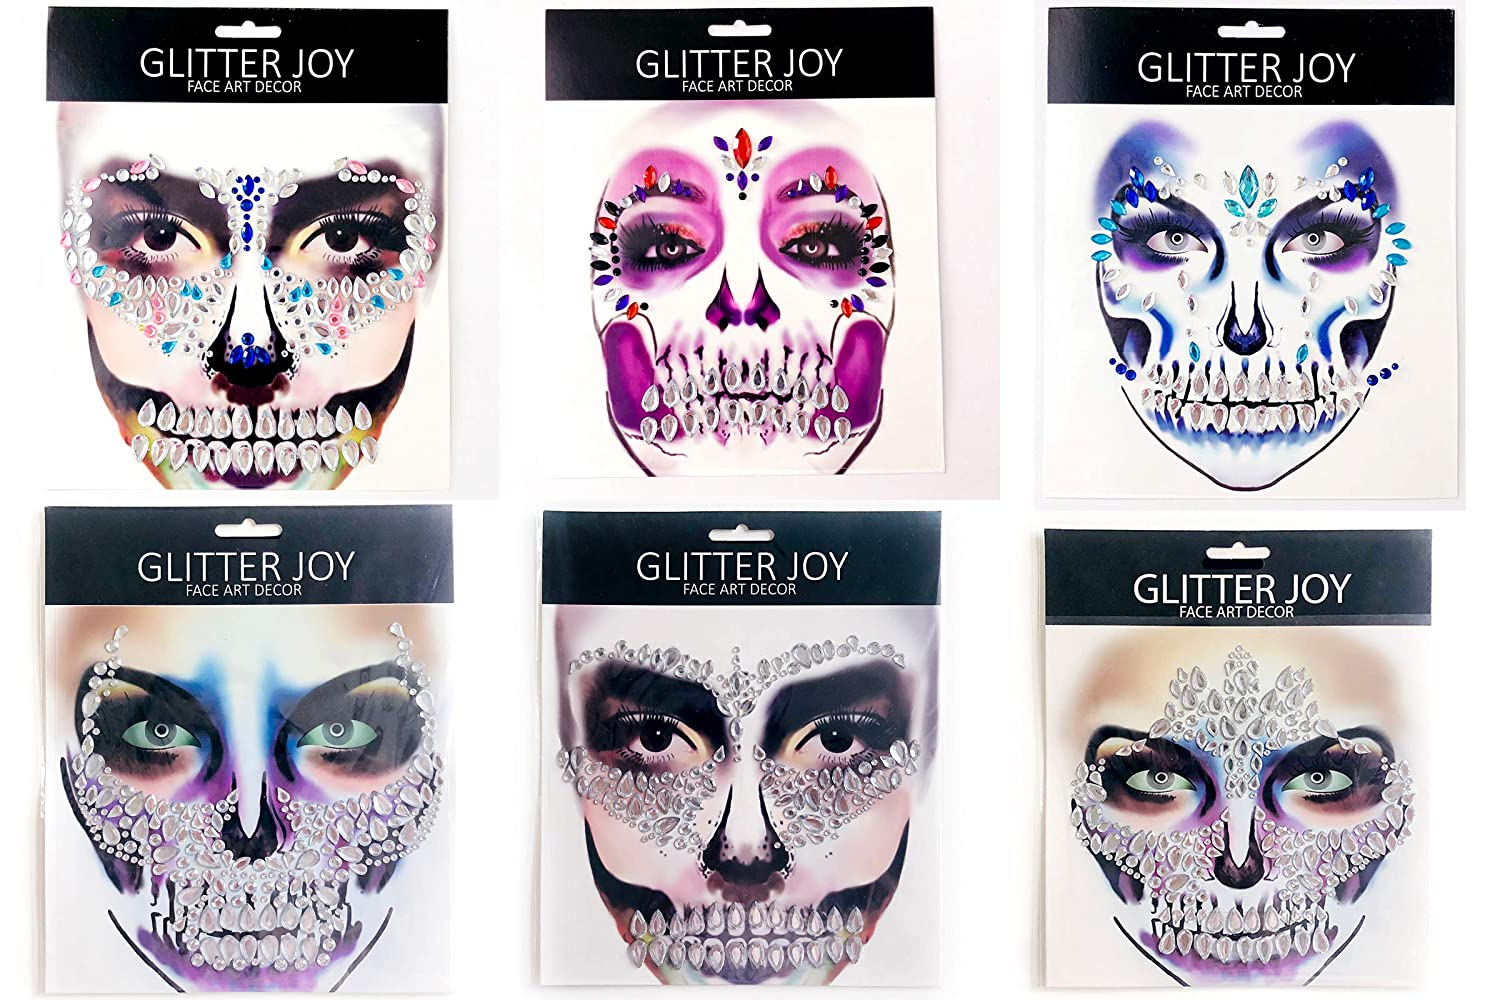 Leoars Skull Face Gems Jewels, Halloween Temporary Face Tattoos, Rhinestone Face Jewels Tattoo Stickers, Crystals Body Gems Stick on Face for Festival Rave Party Outfit, 6-Pack